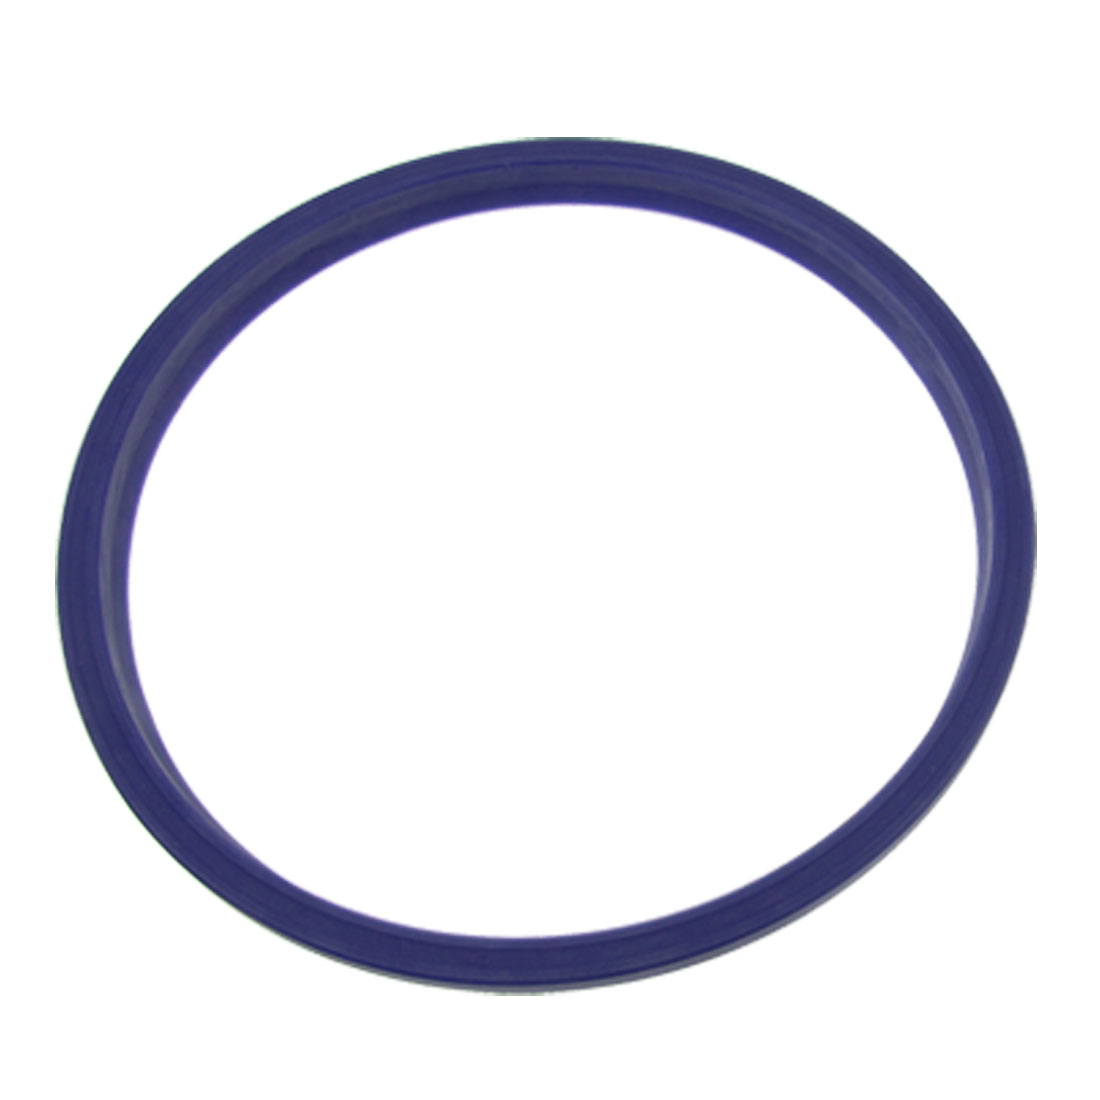 PU Piston Rod Dust Proof Seal Sealing Ring Blue FJ 195x215x7x13mm